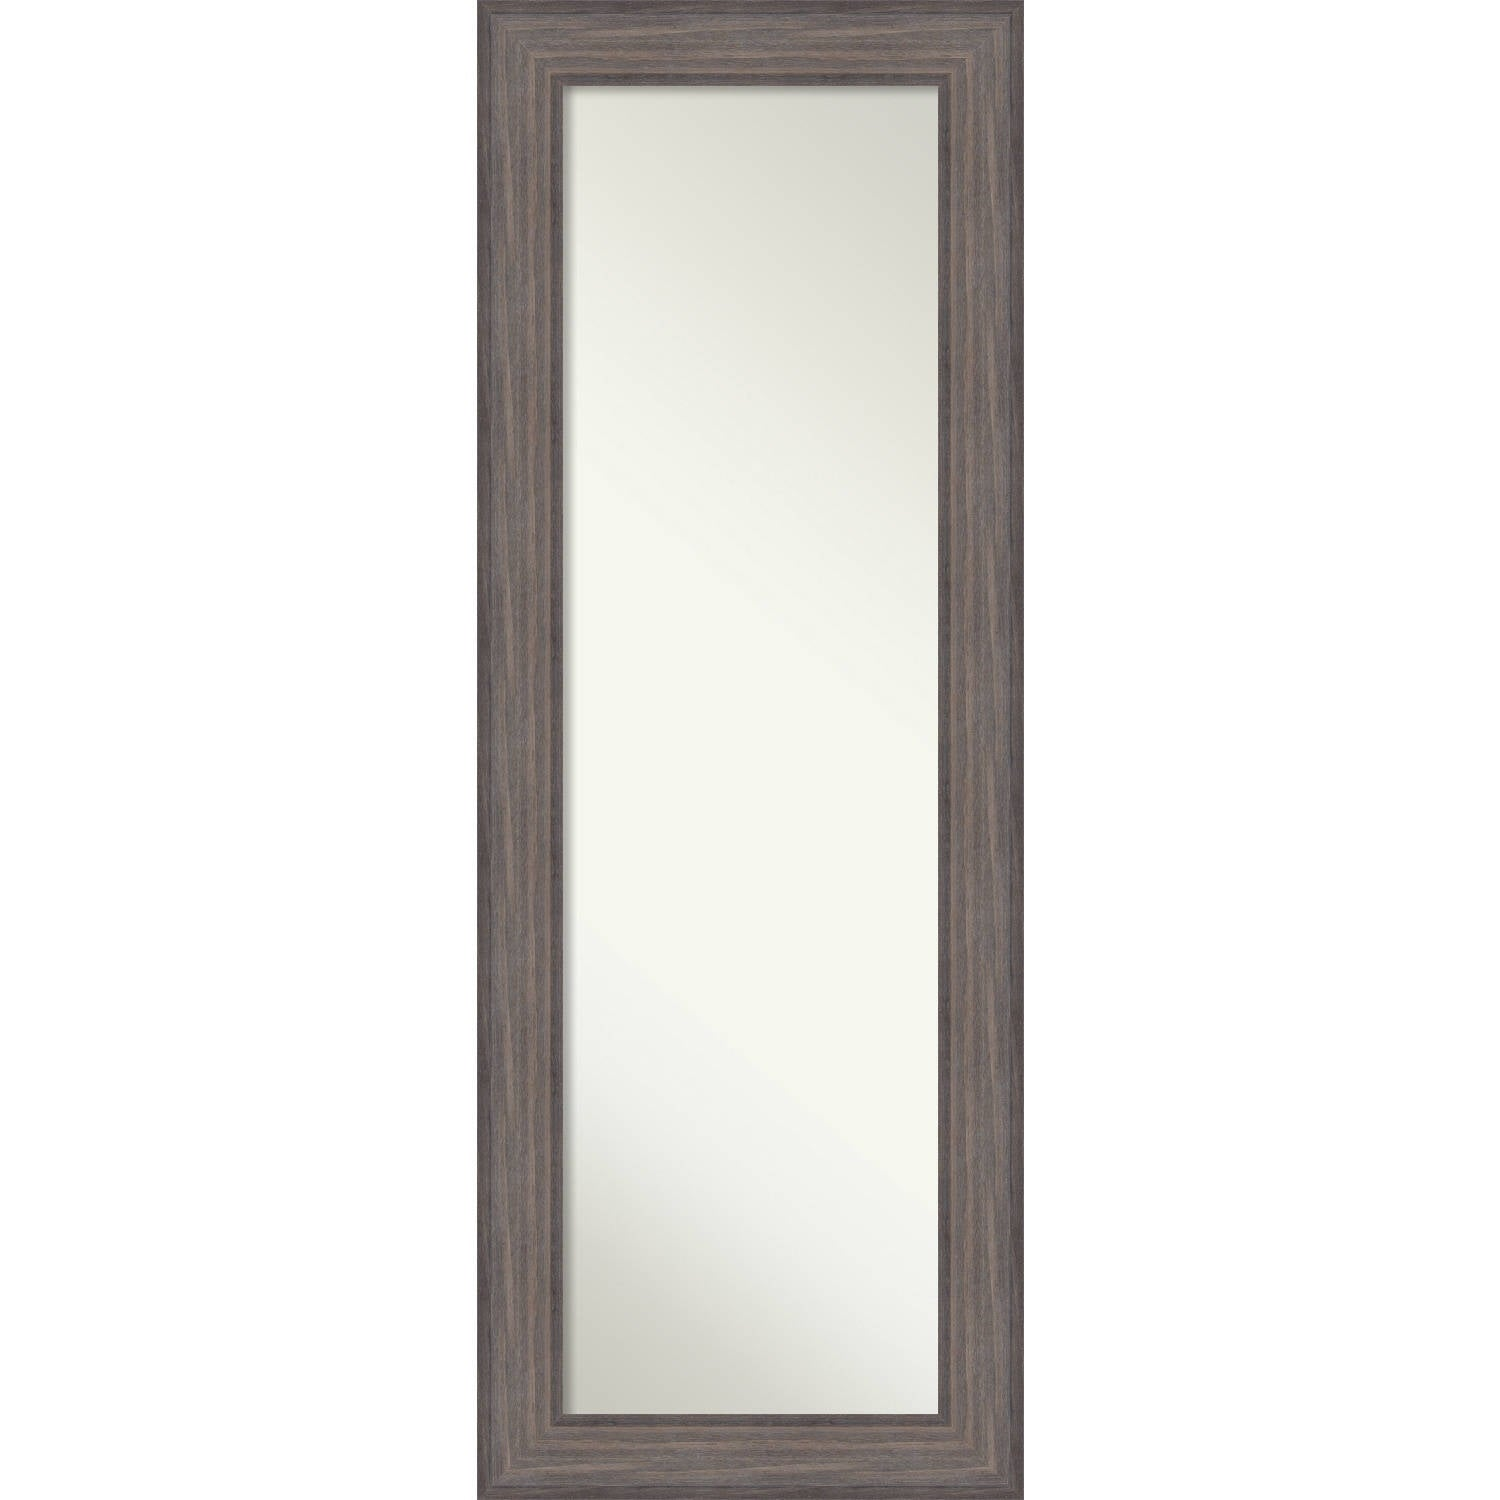 On The Door Full Length Wall Mirror Country Barnwood 20 X 54 Inch Brown Grey 53 25 19 0 741 Inches Deep